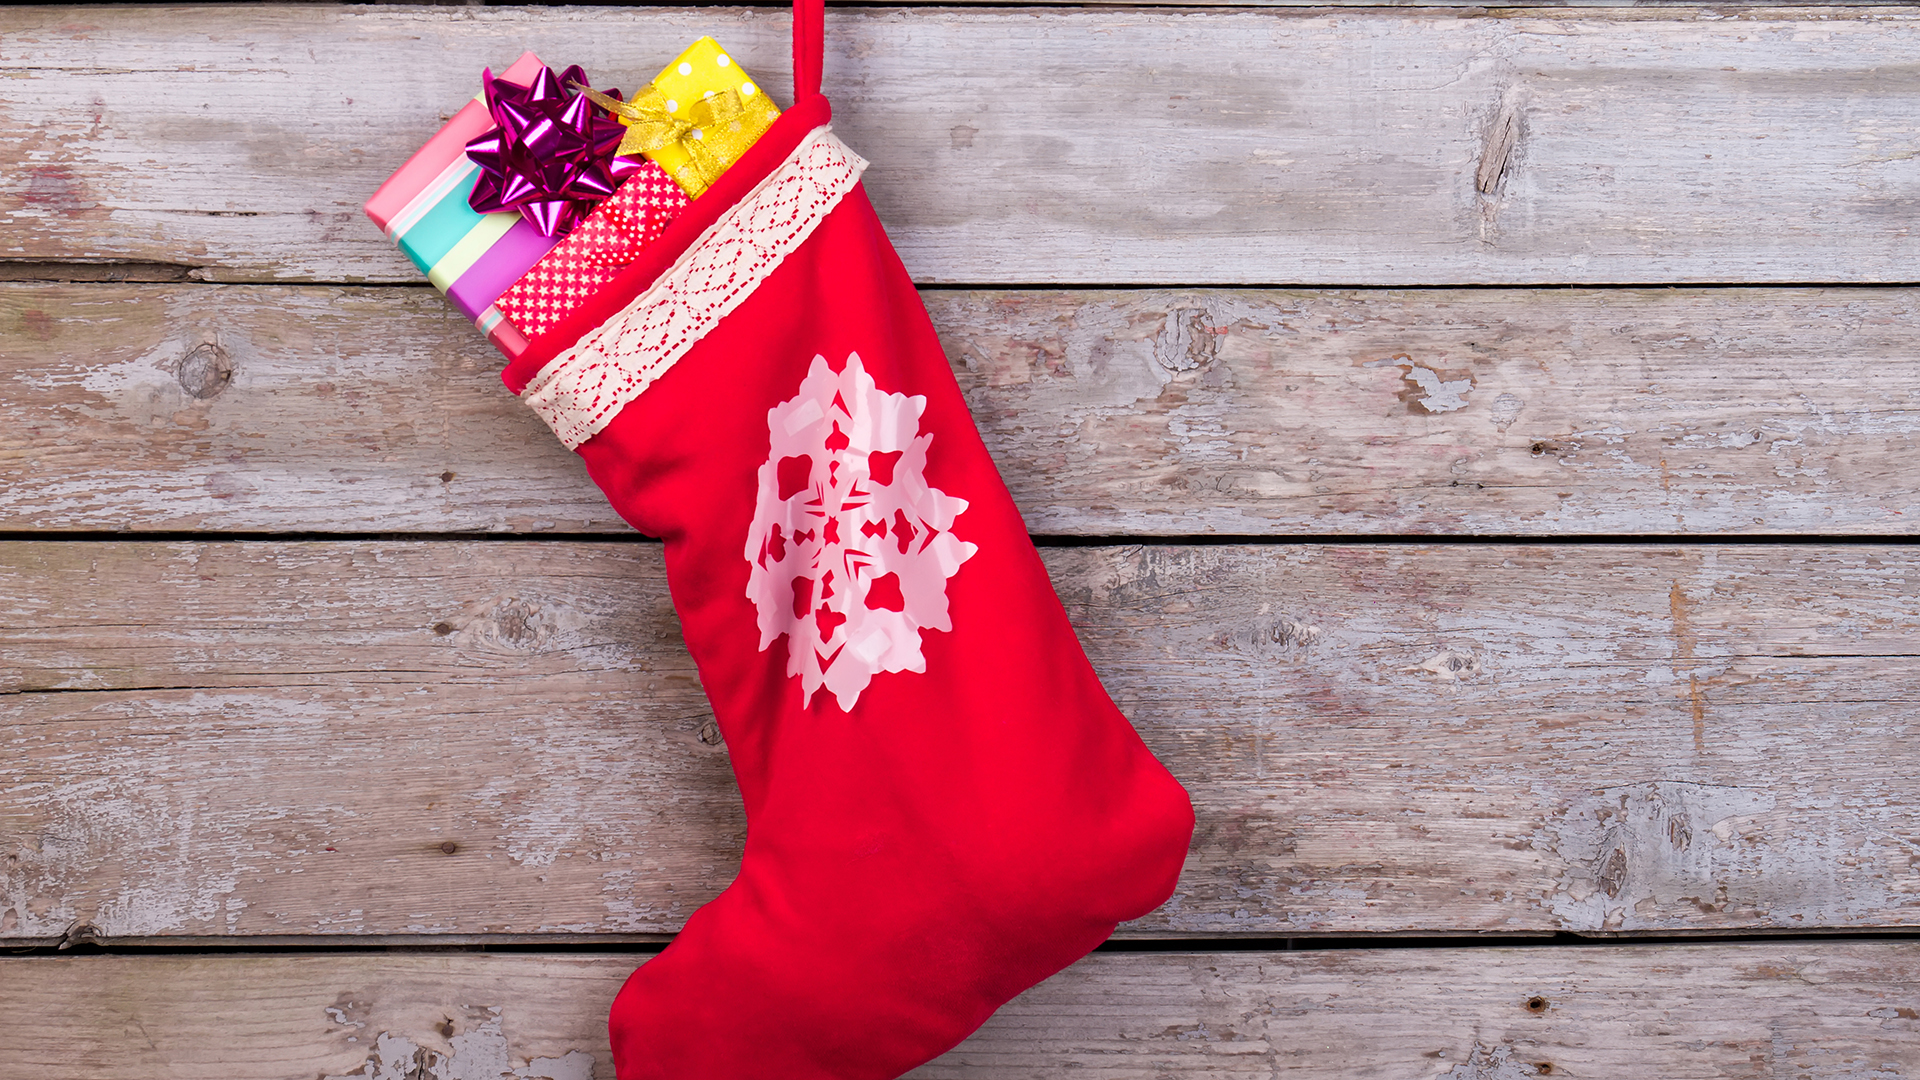 7f8f1faee58 Last-minute stocking stuffer ideas the whole family will love